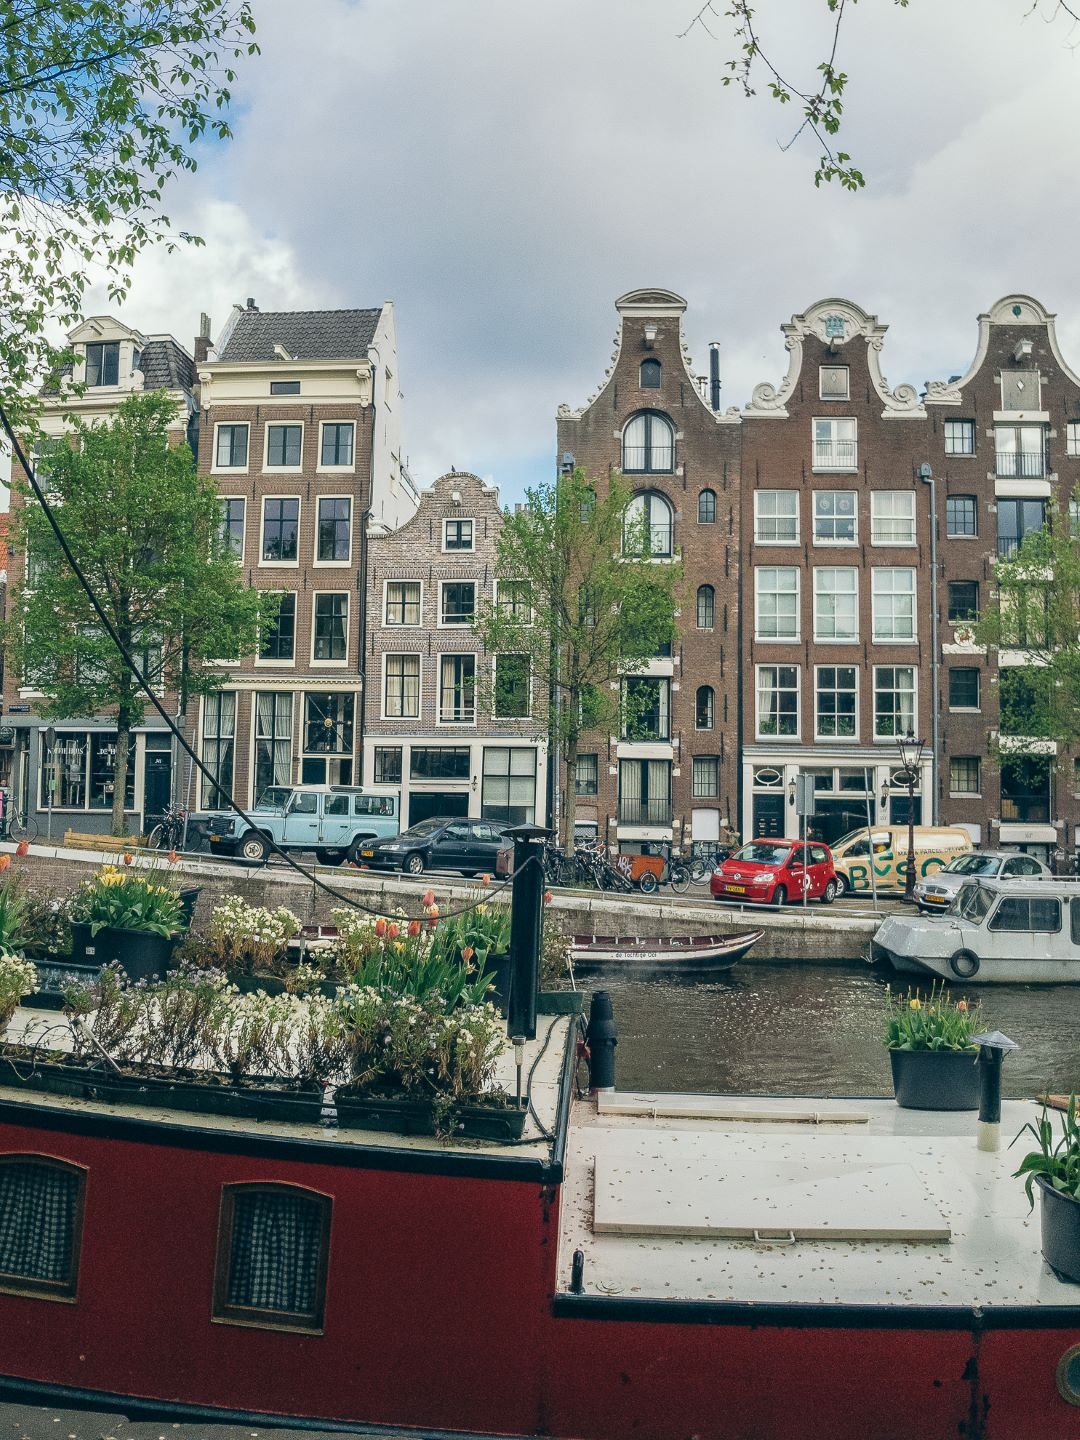 Amsterdam Canal Houses Boat View Close Up.jpg